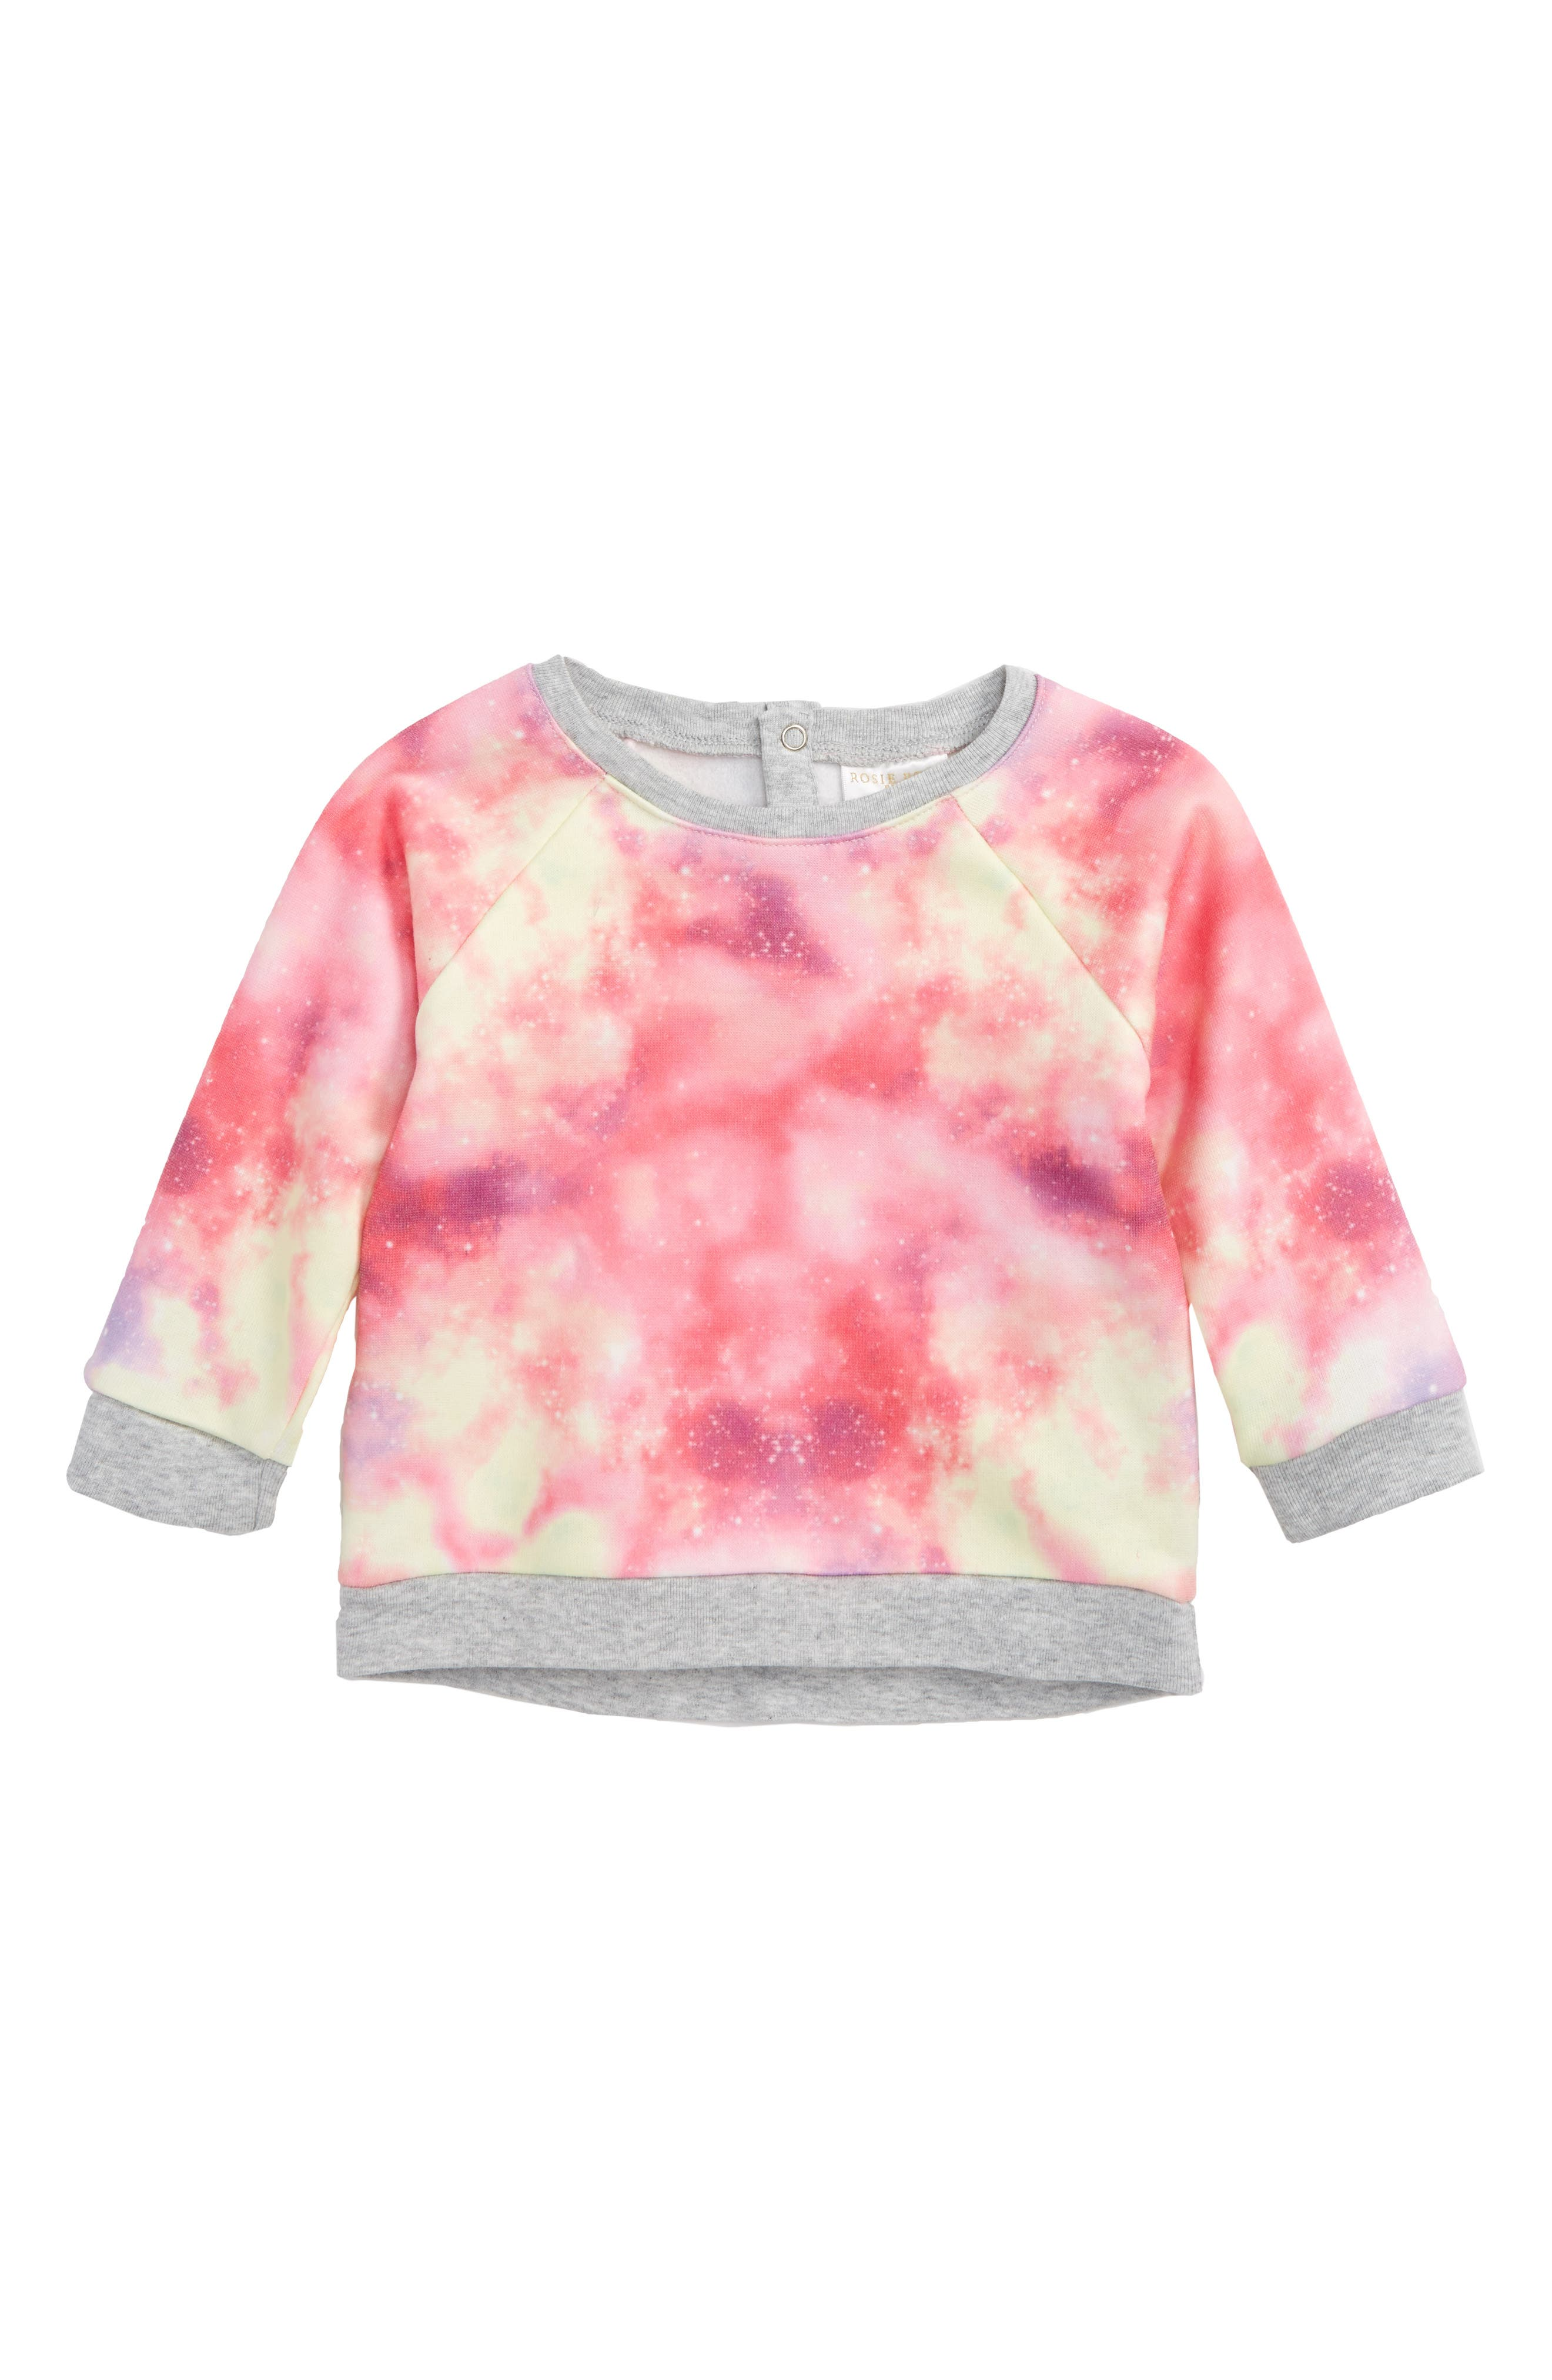 Rosie Pope Out of this World Print Sweatshirt (Baby Girls)